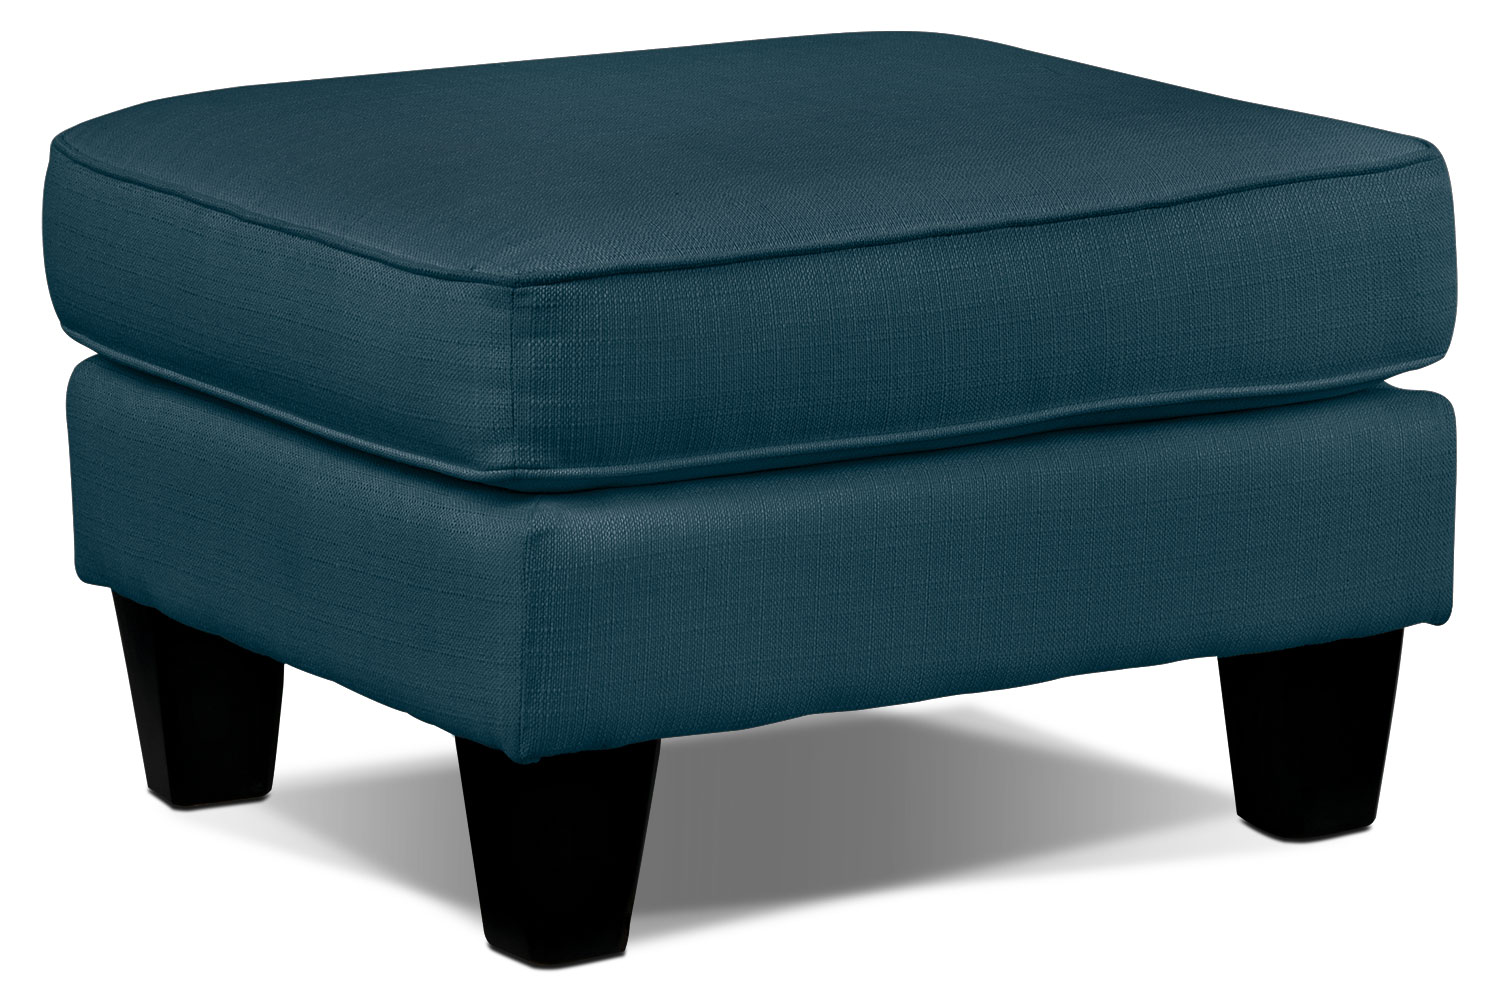 Living Room Furniture - Klein Ottoman - Azure